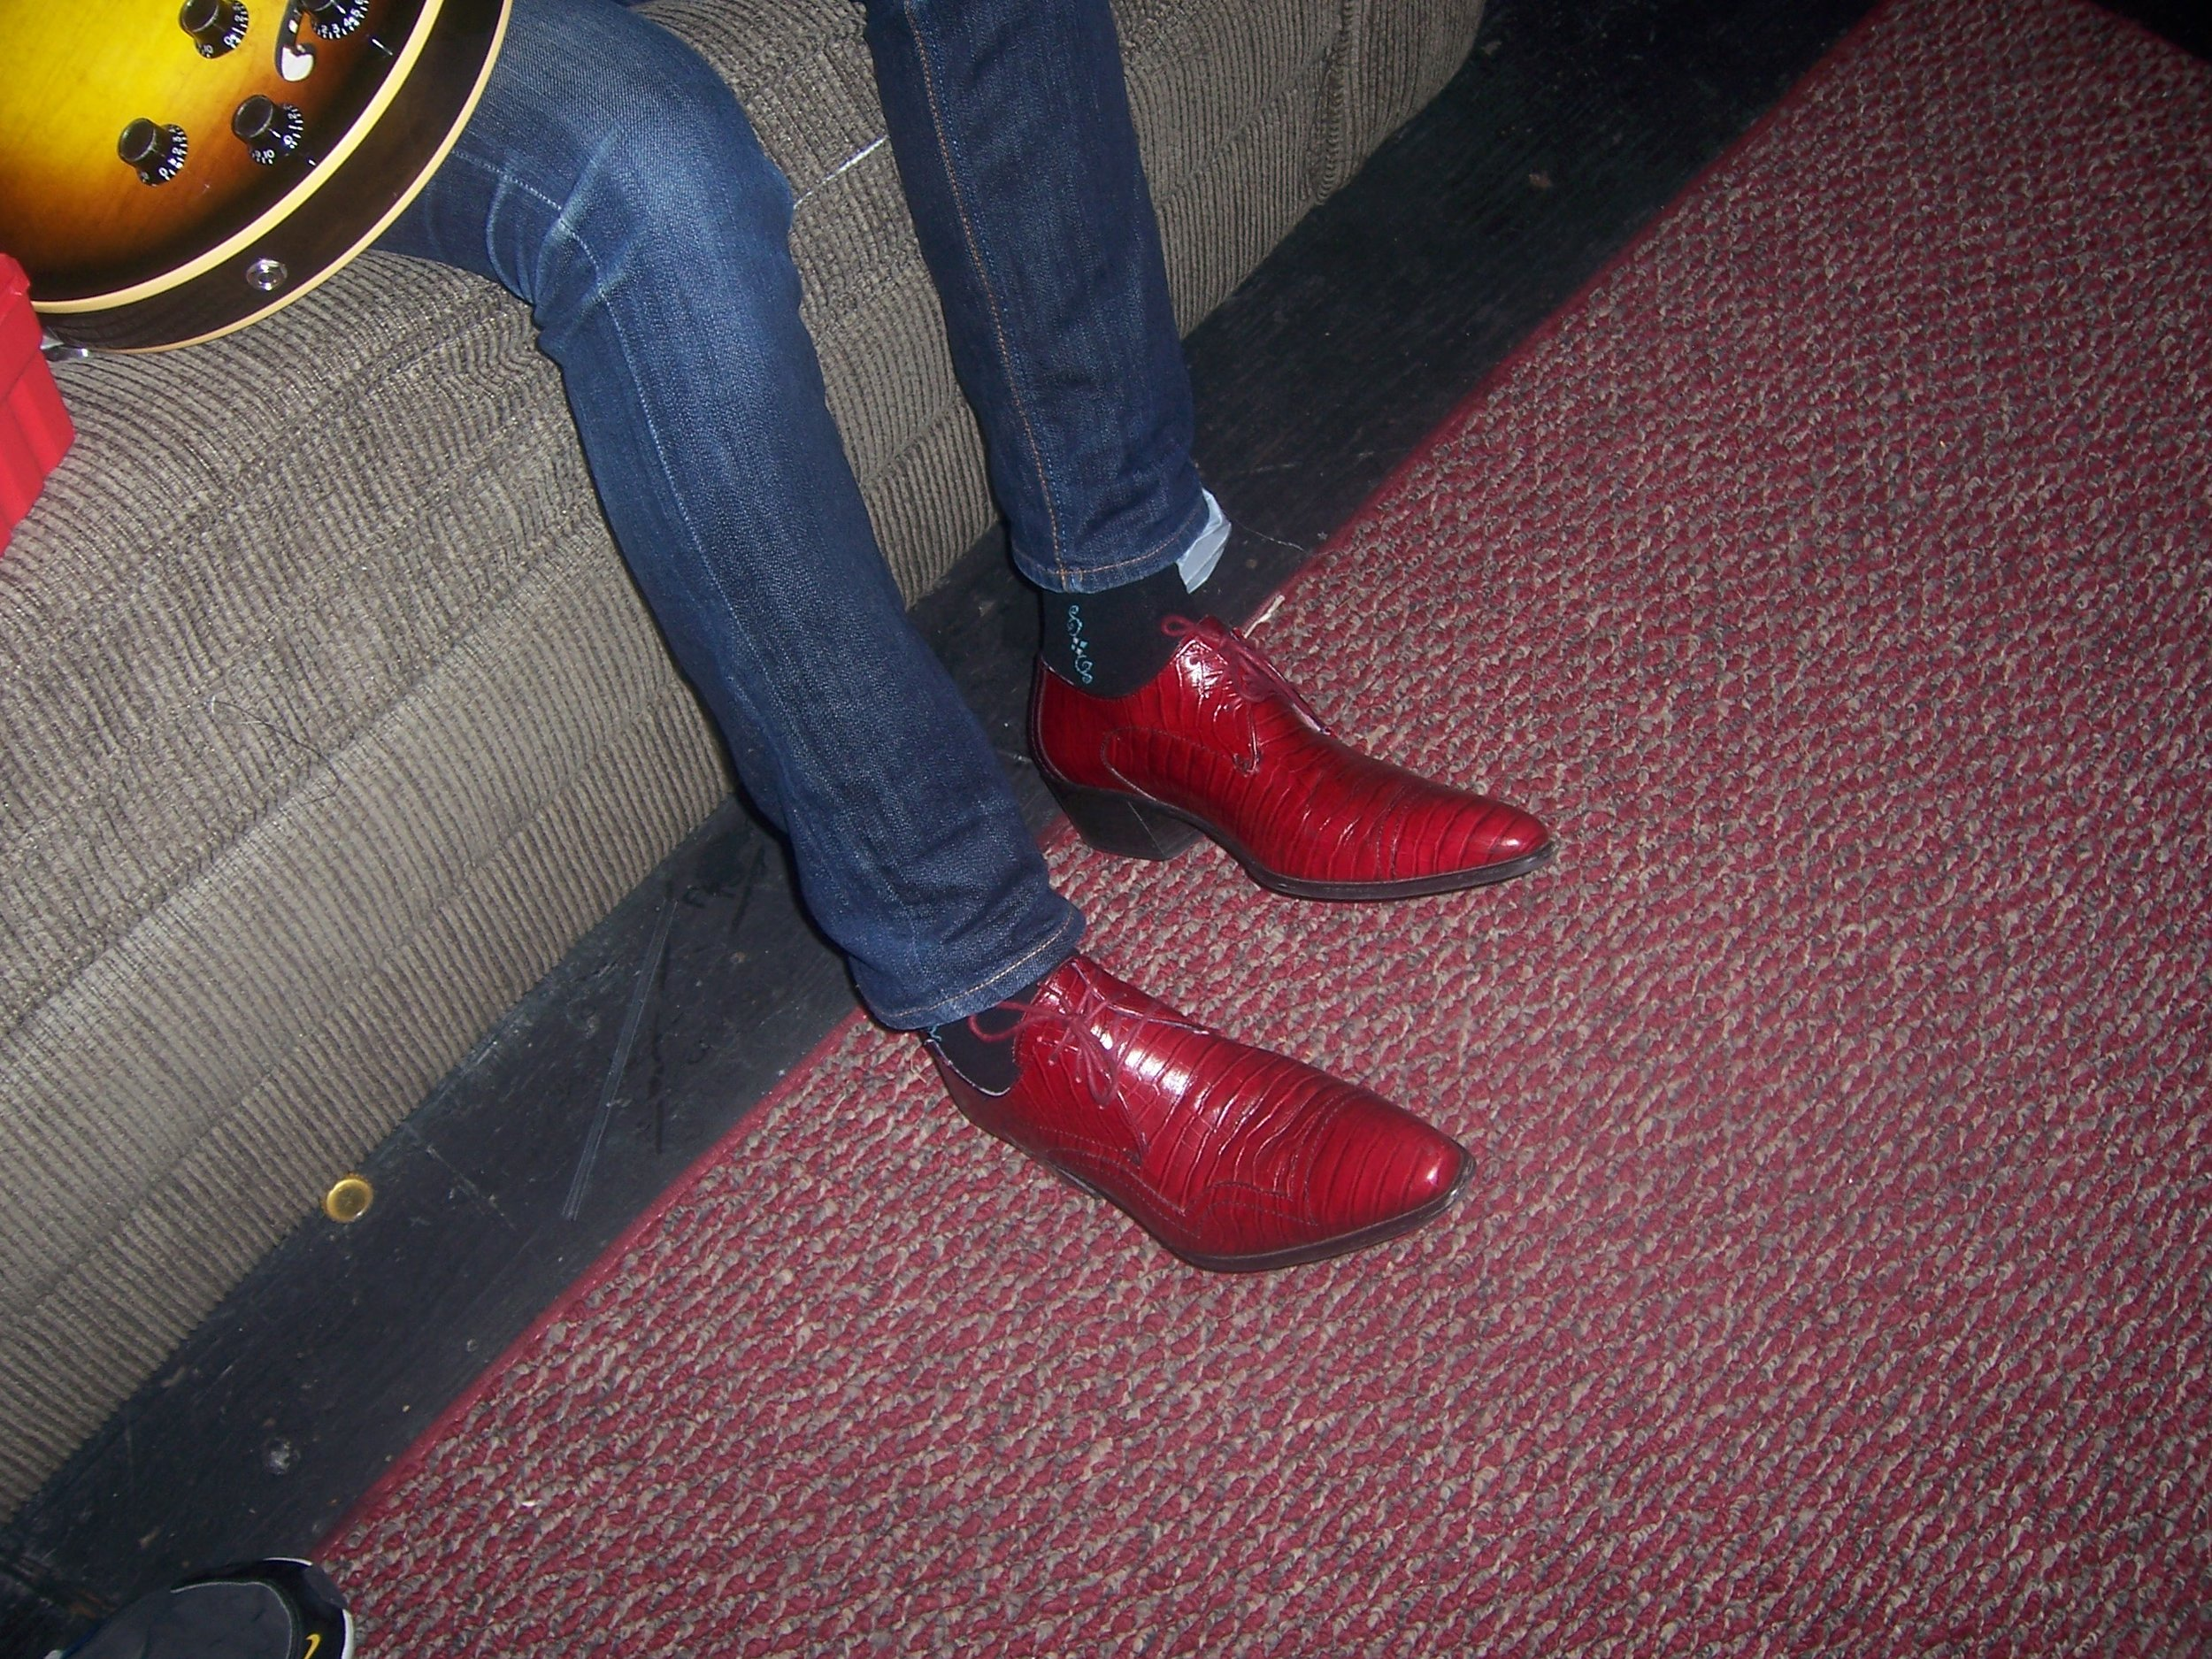 Alejandro Escovedo has the best shoes!